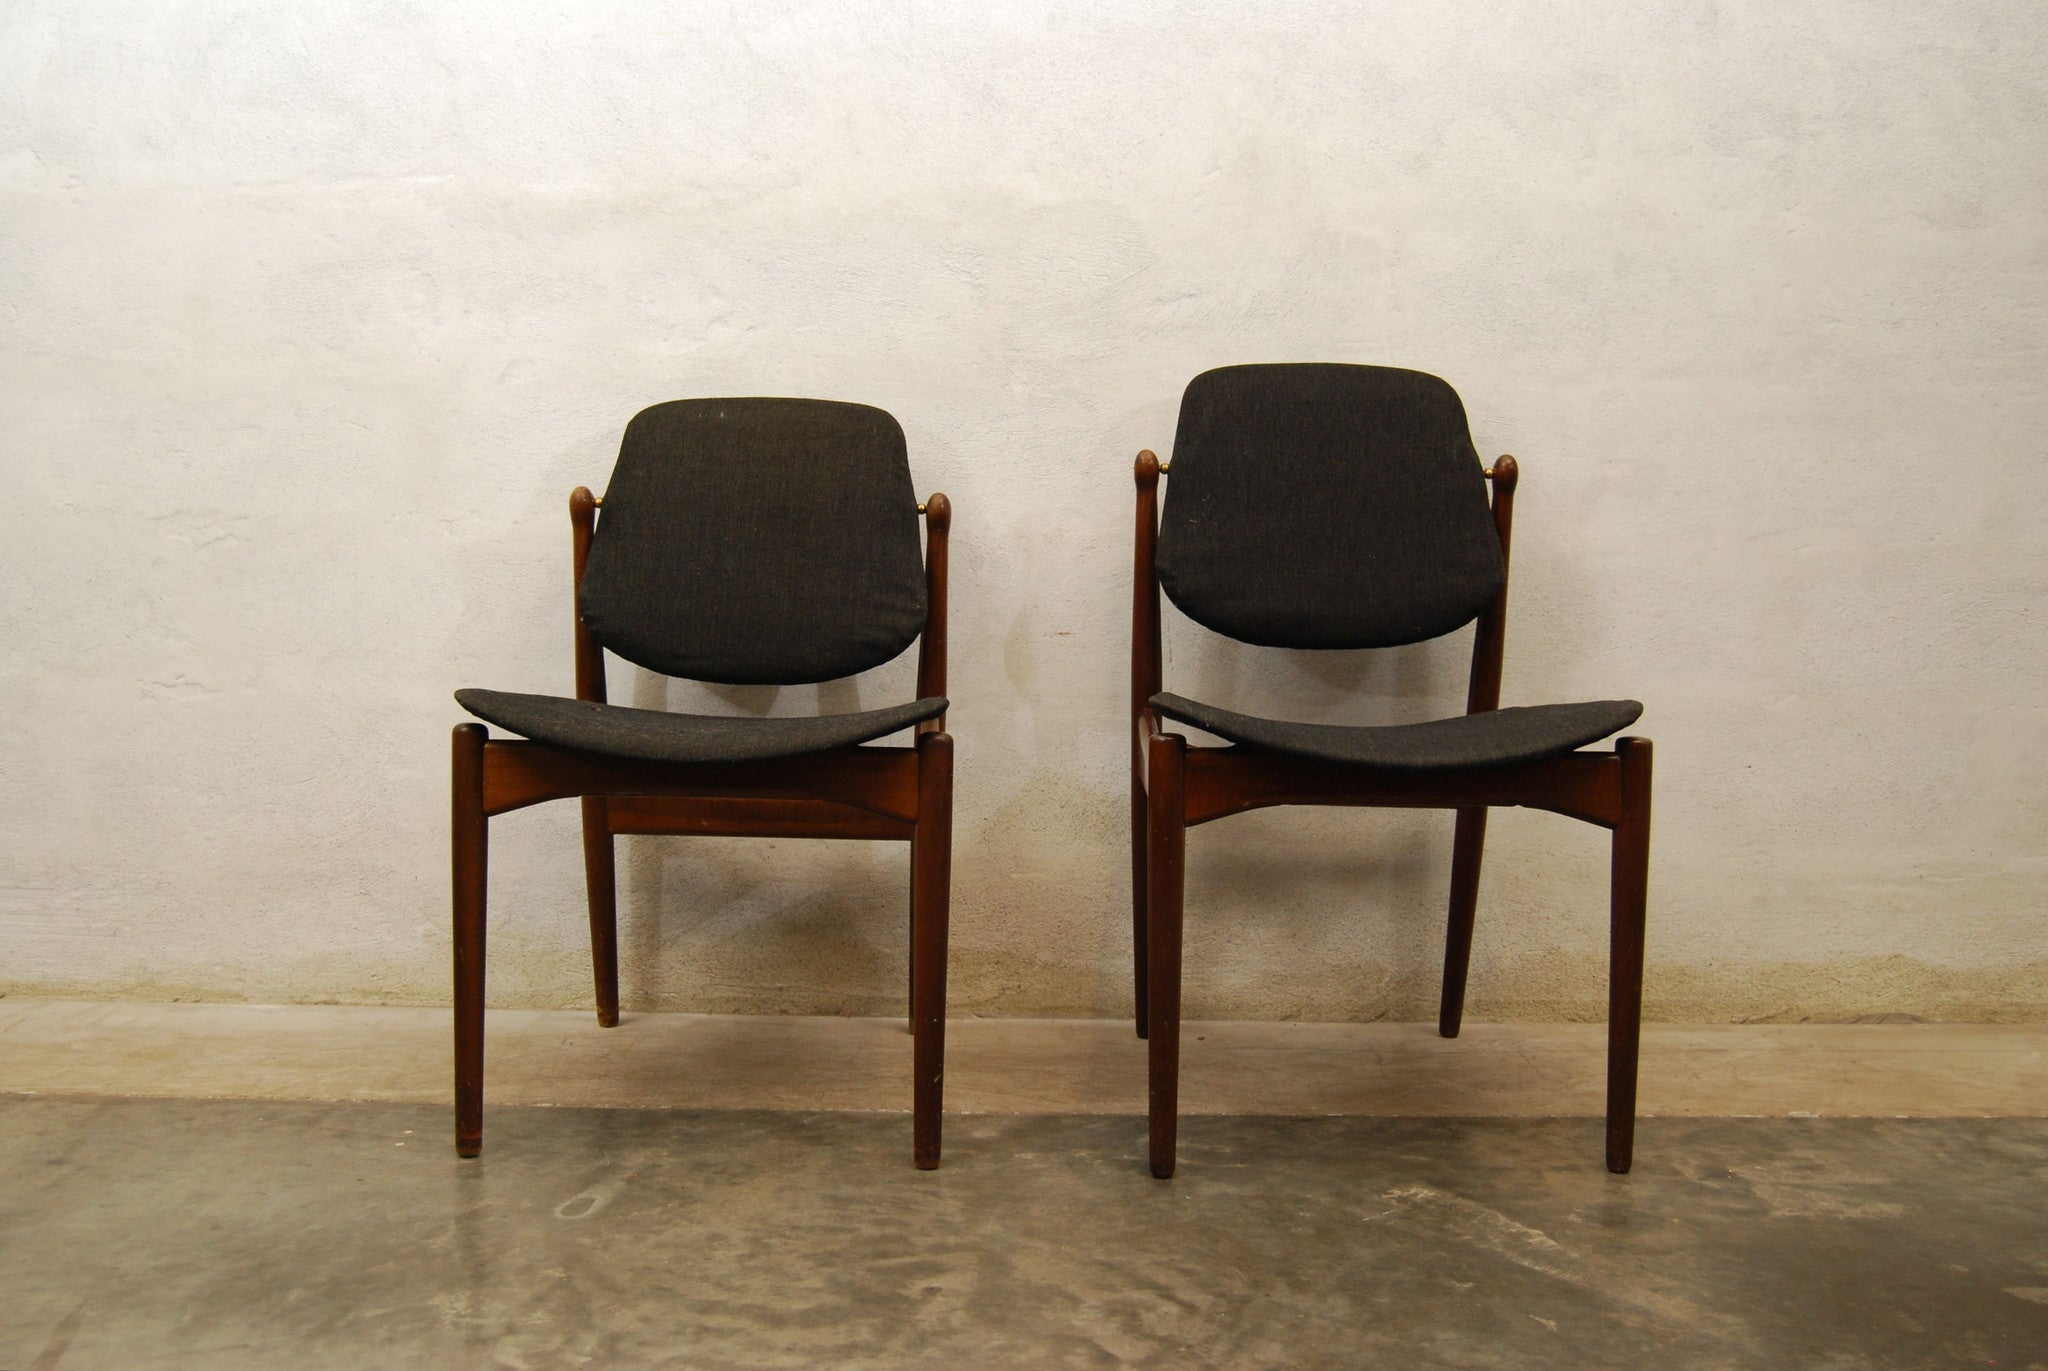 Pair of occasional chairs by Arne Vodder